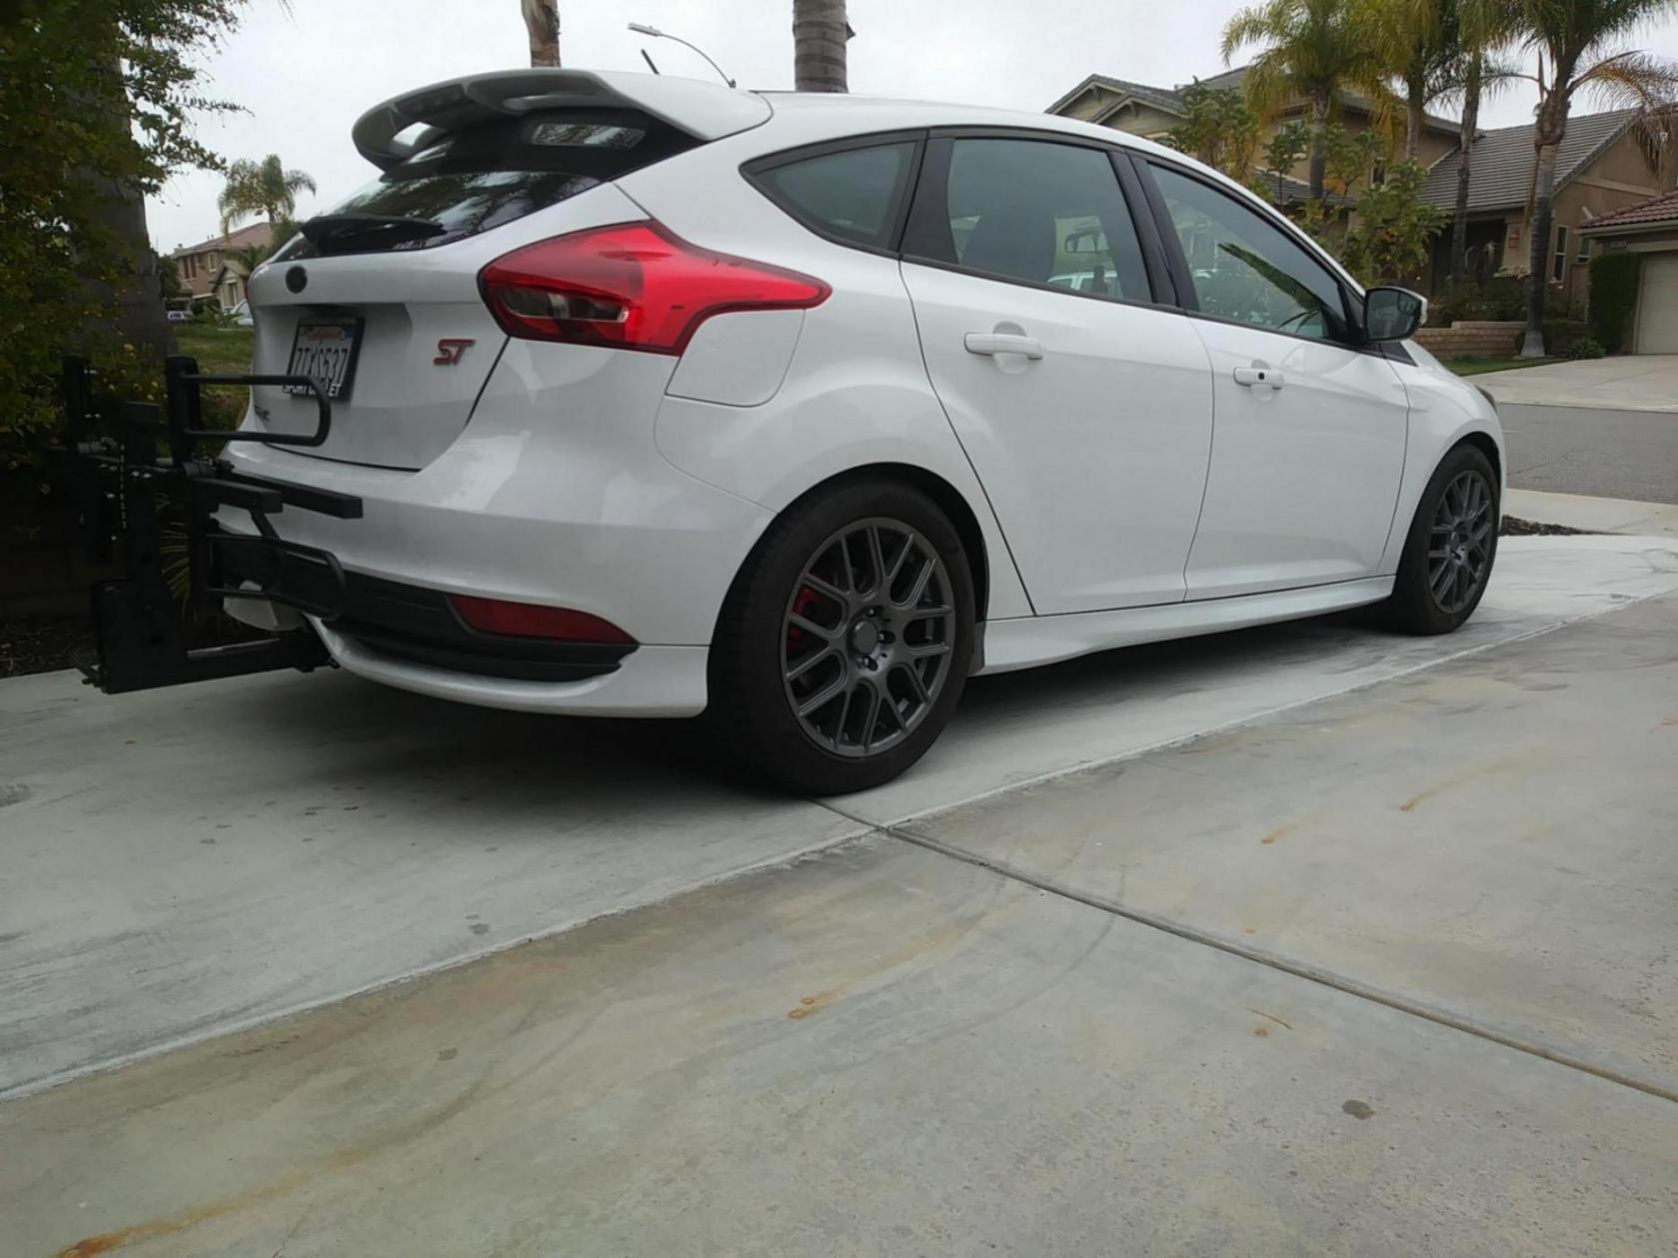 2016 FoST2 - Mods.  (From NA FoSE to FoST)-20190105_120157_1549254448988.jpg